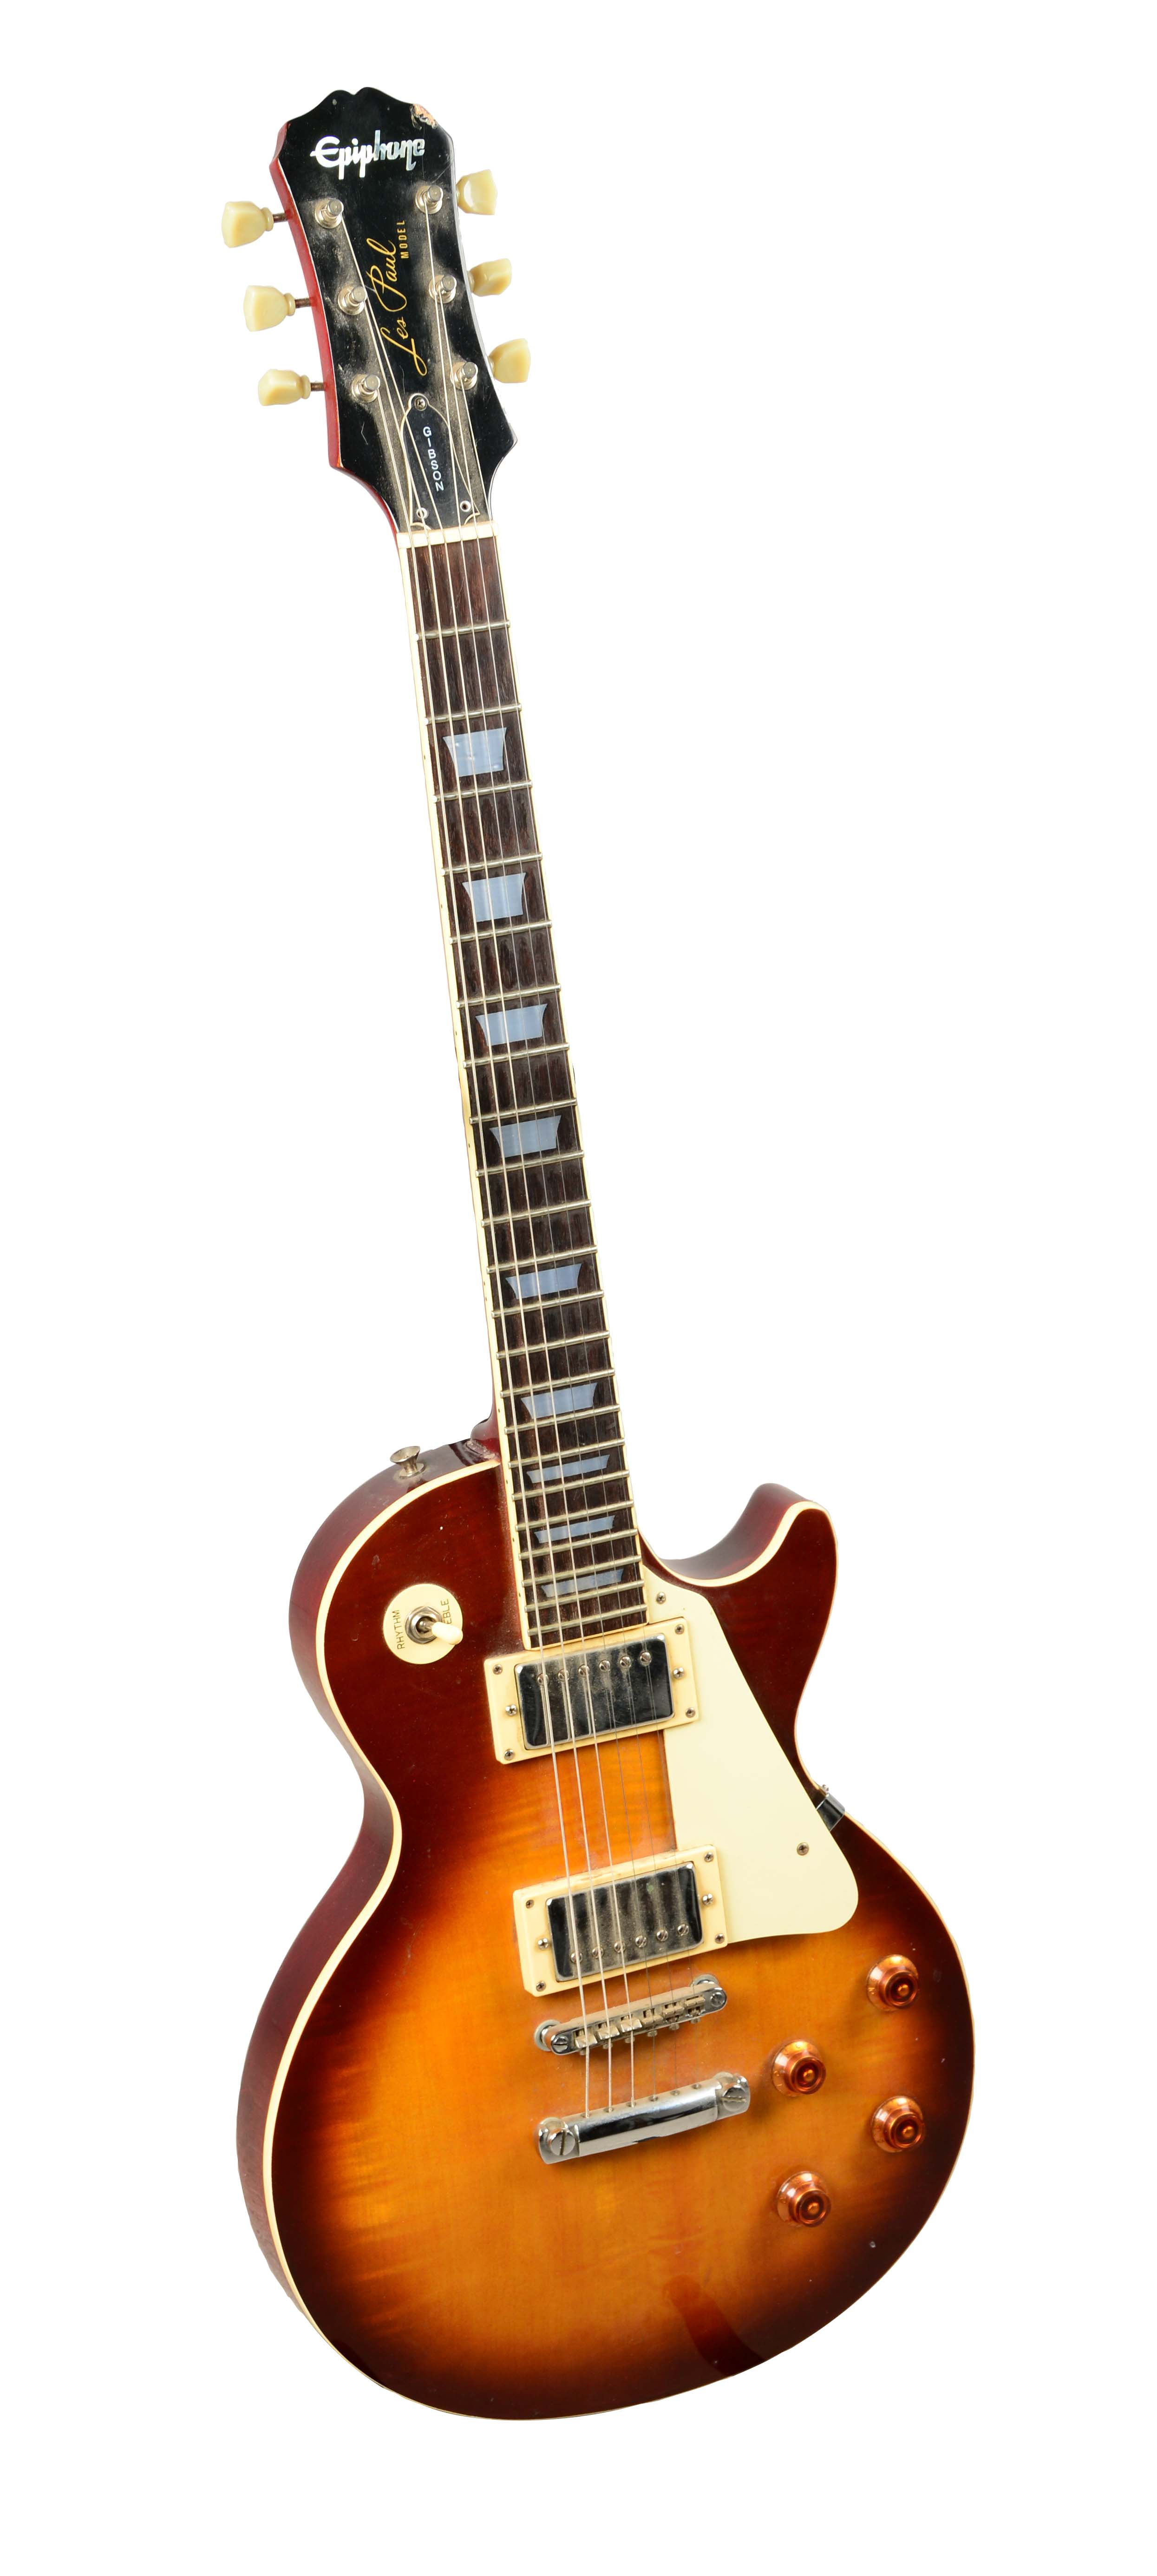 lot detail epiphone gibson les paul electric guitar. Black Bedroom Furniture Sets. Home Design Ideas